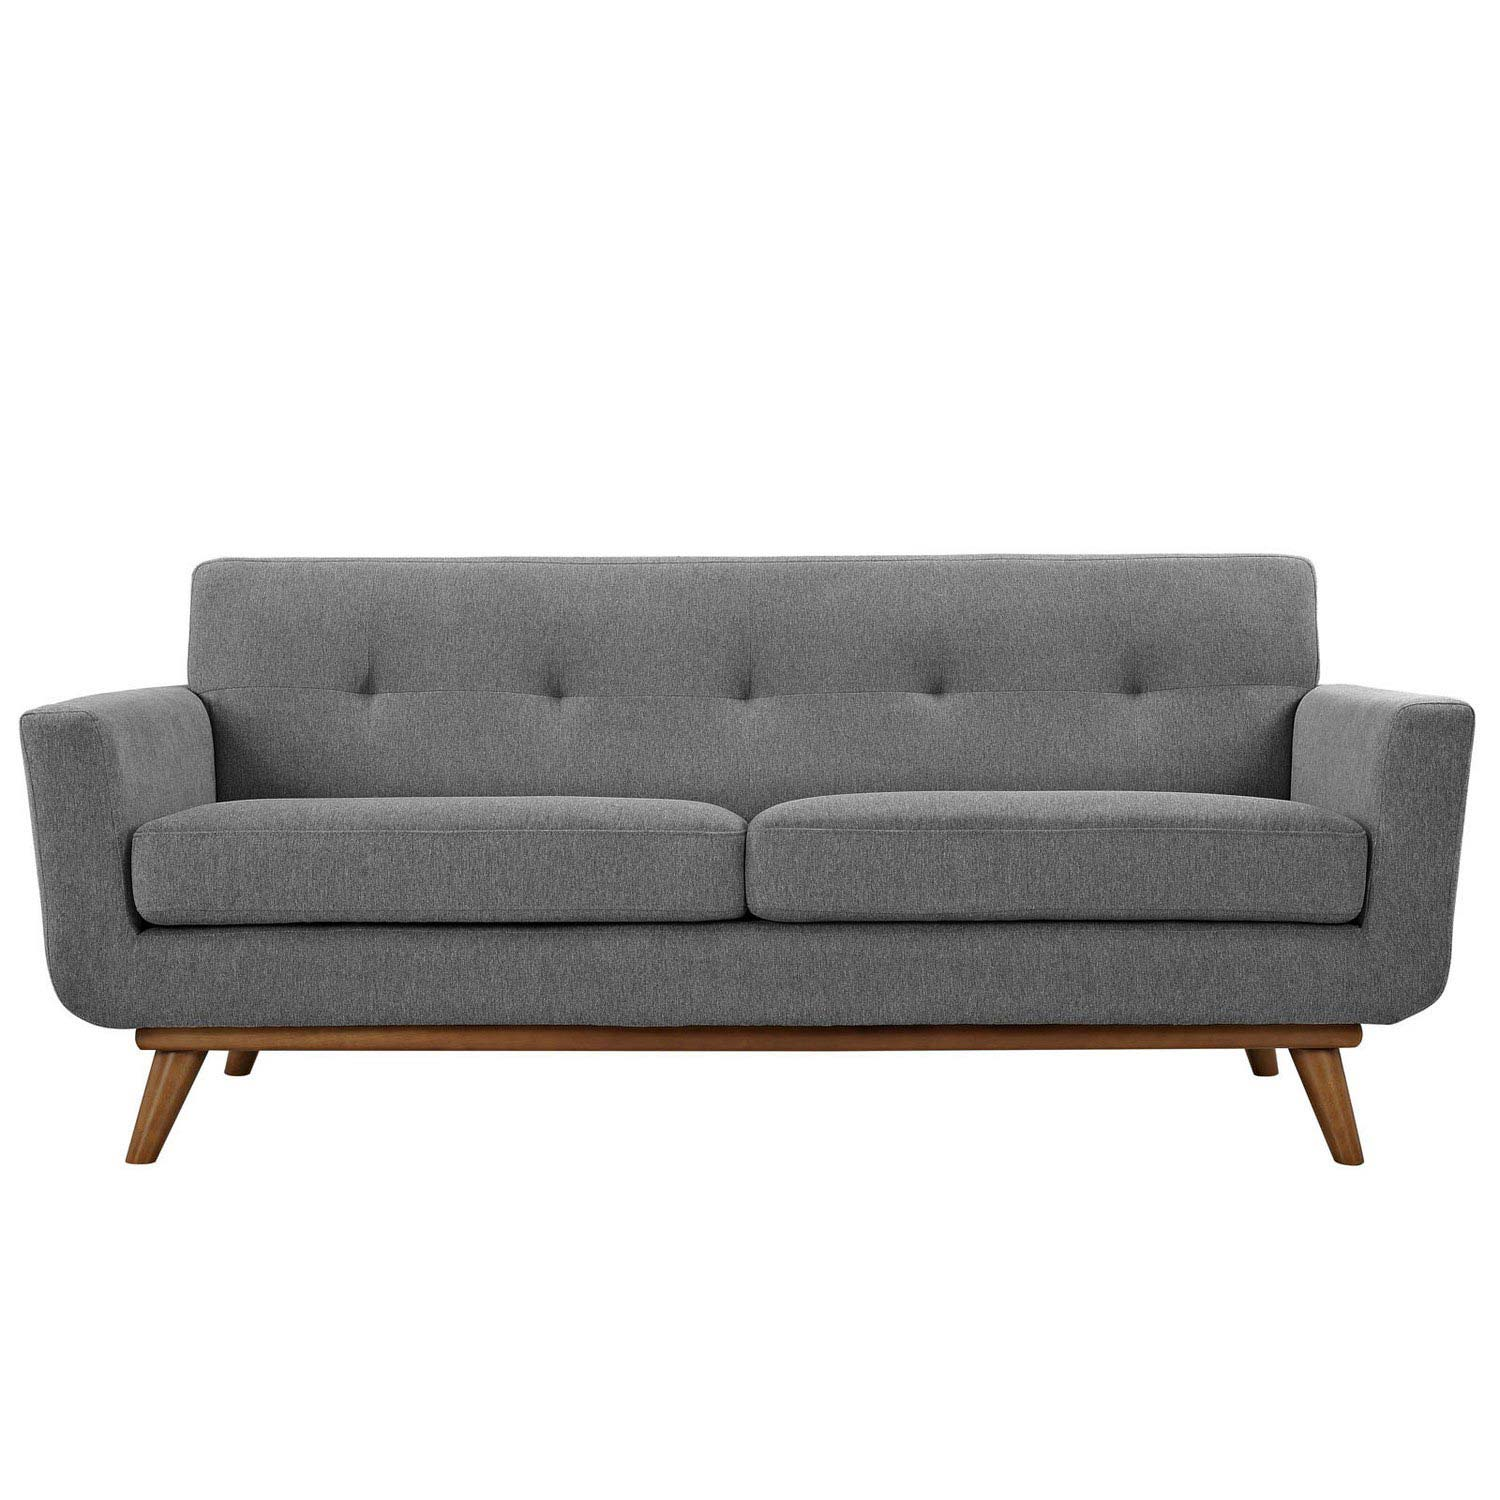 Modway Engage Loveseat and Sofa Set of 2 - Gray